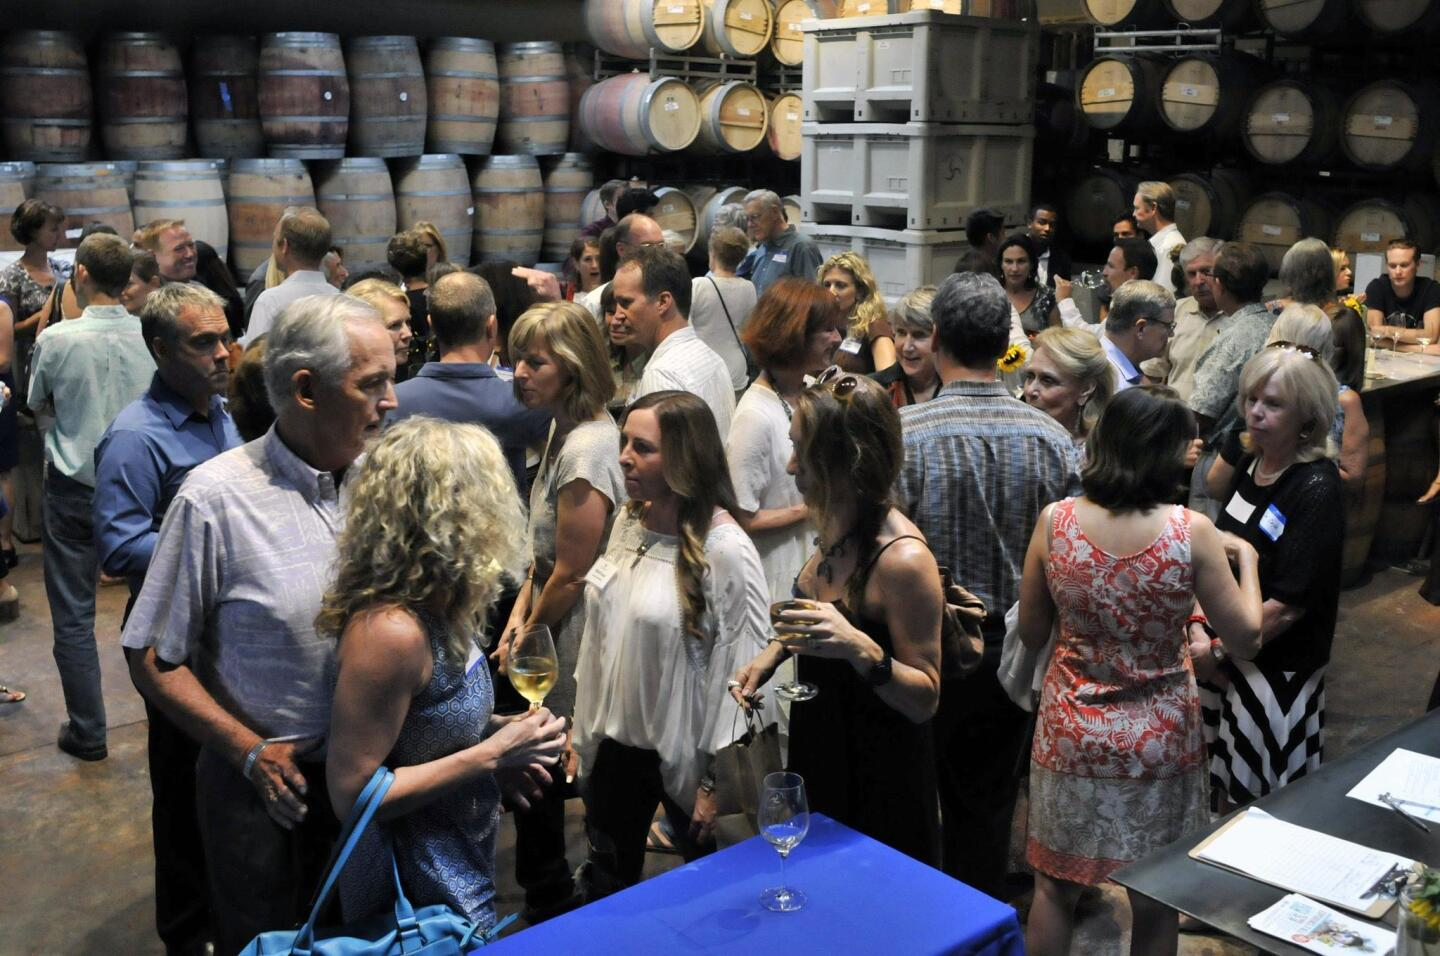 Carruth Cellars of Solana Beach hosted the event